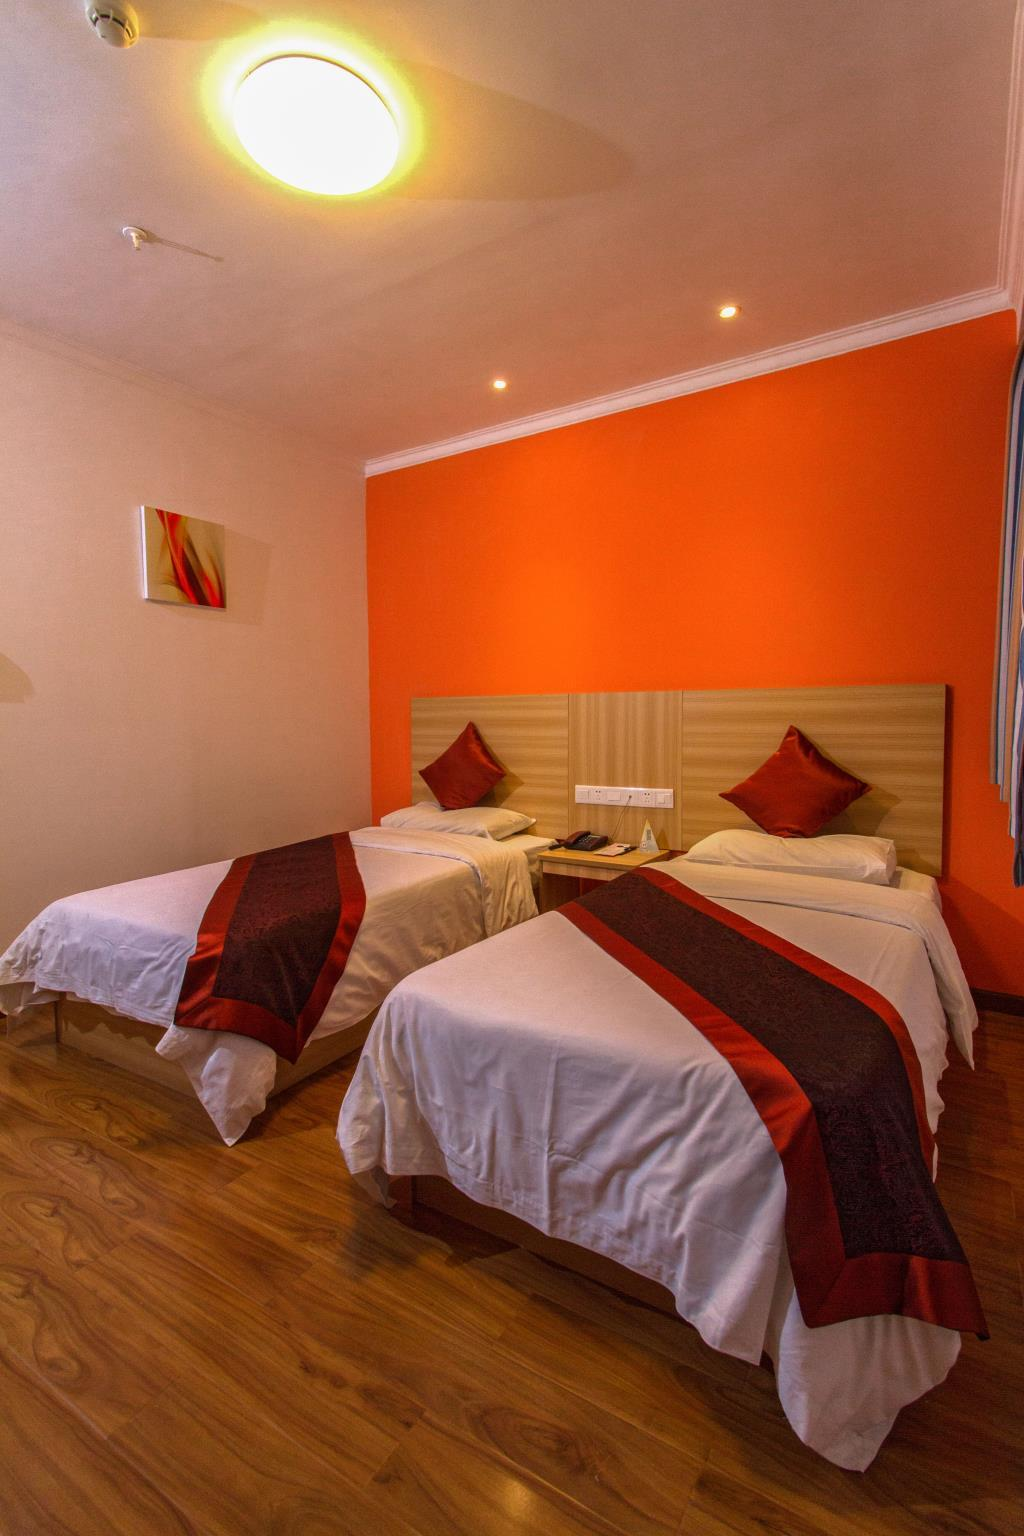 Quarto Standard em edifício anexo com 2 camas individuais (Annex Building Standard Room with 2 Single Beds)